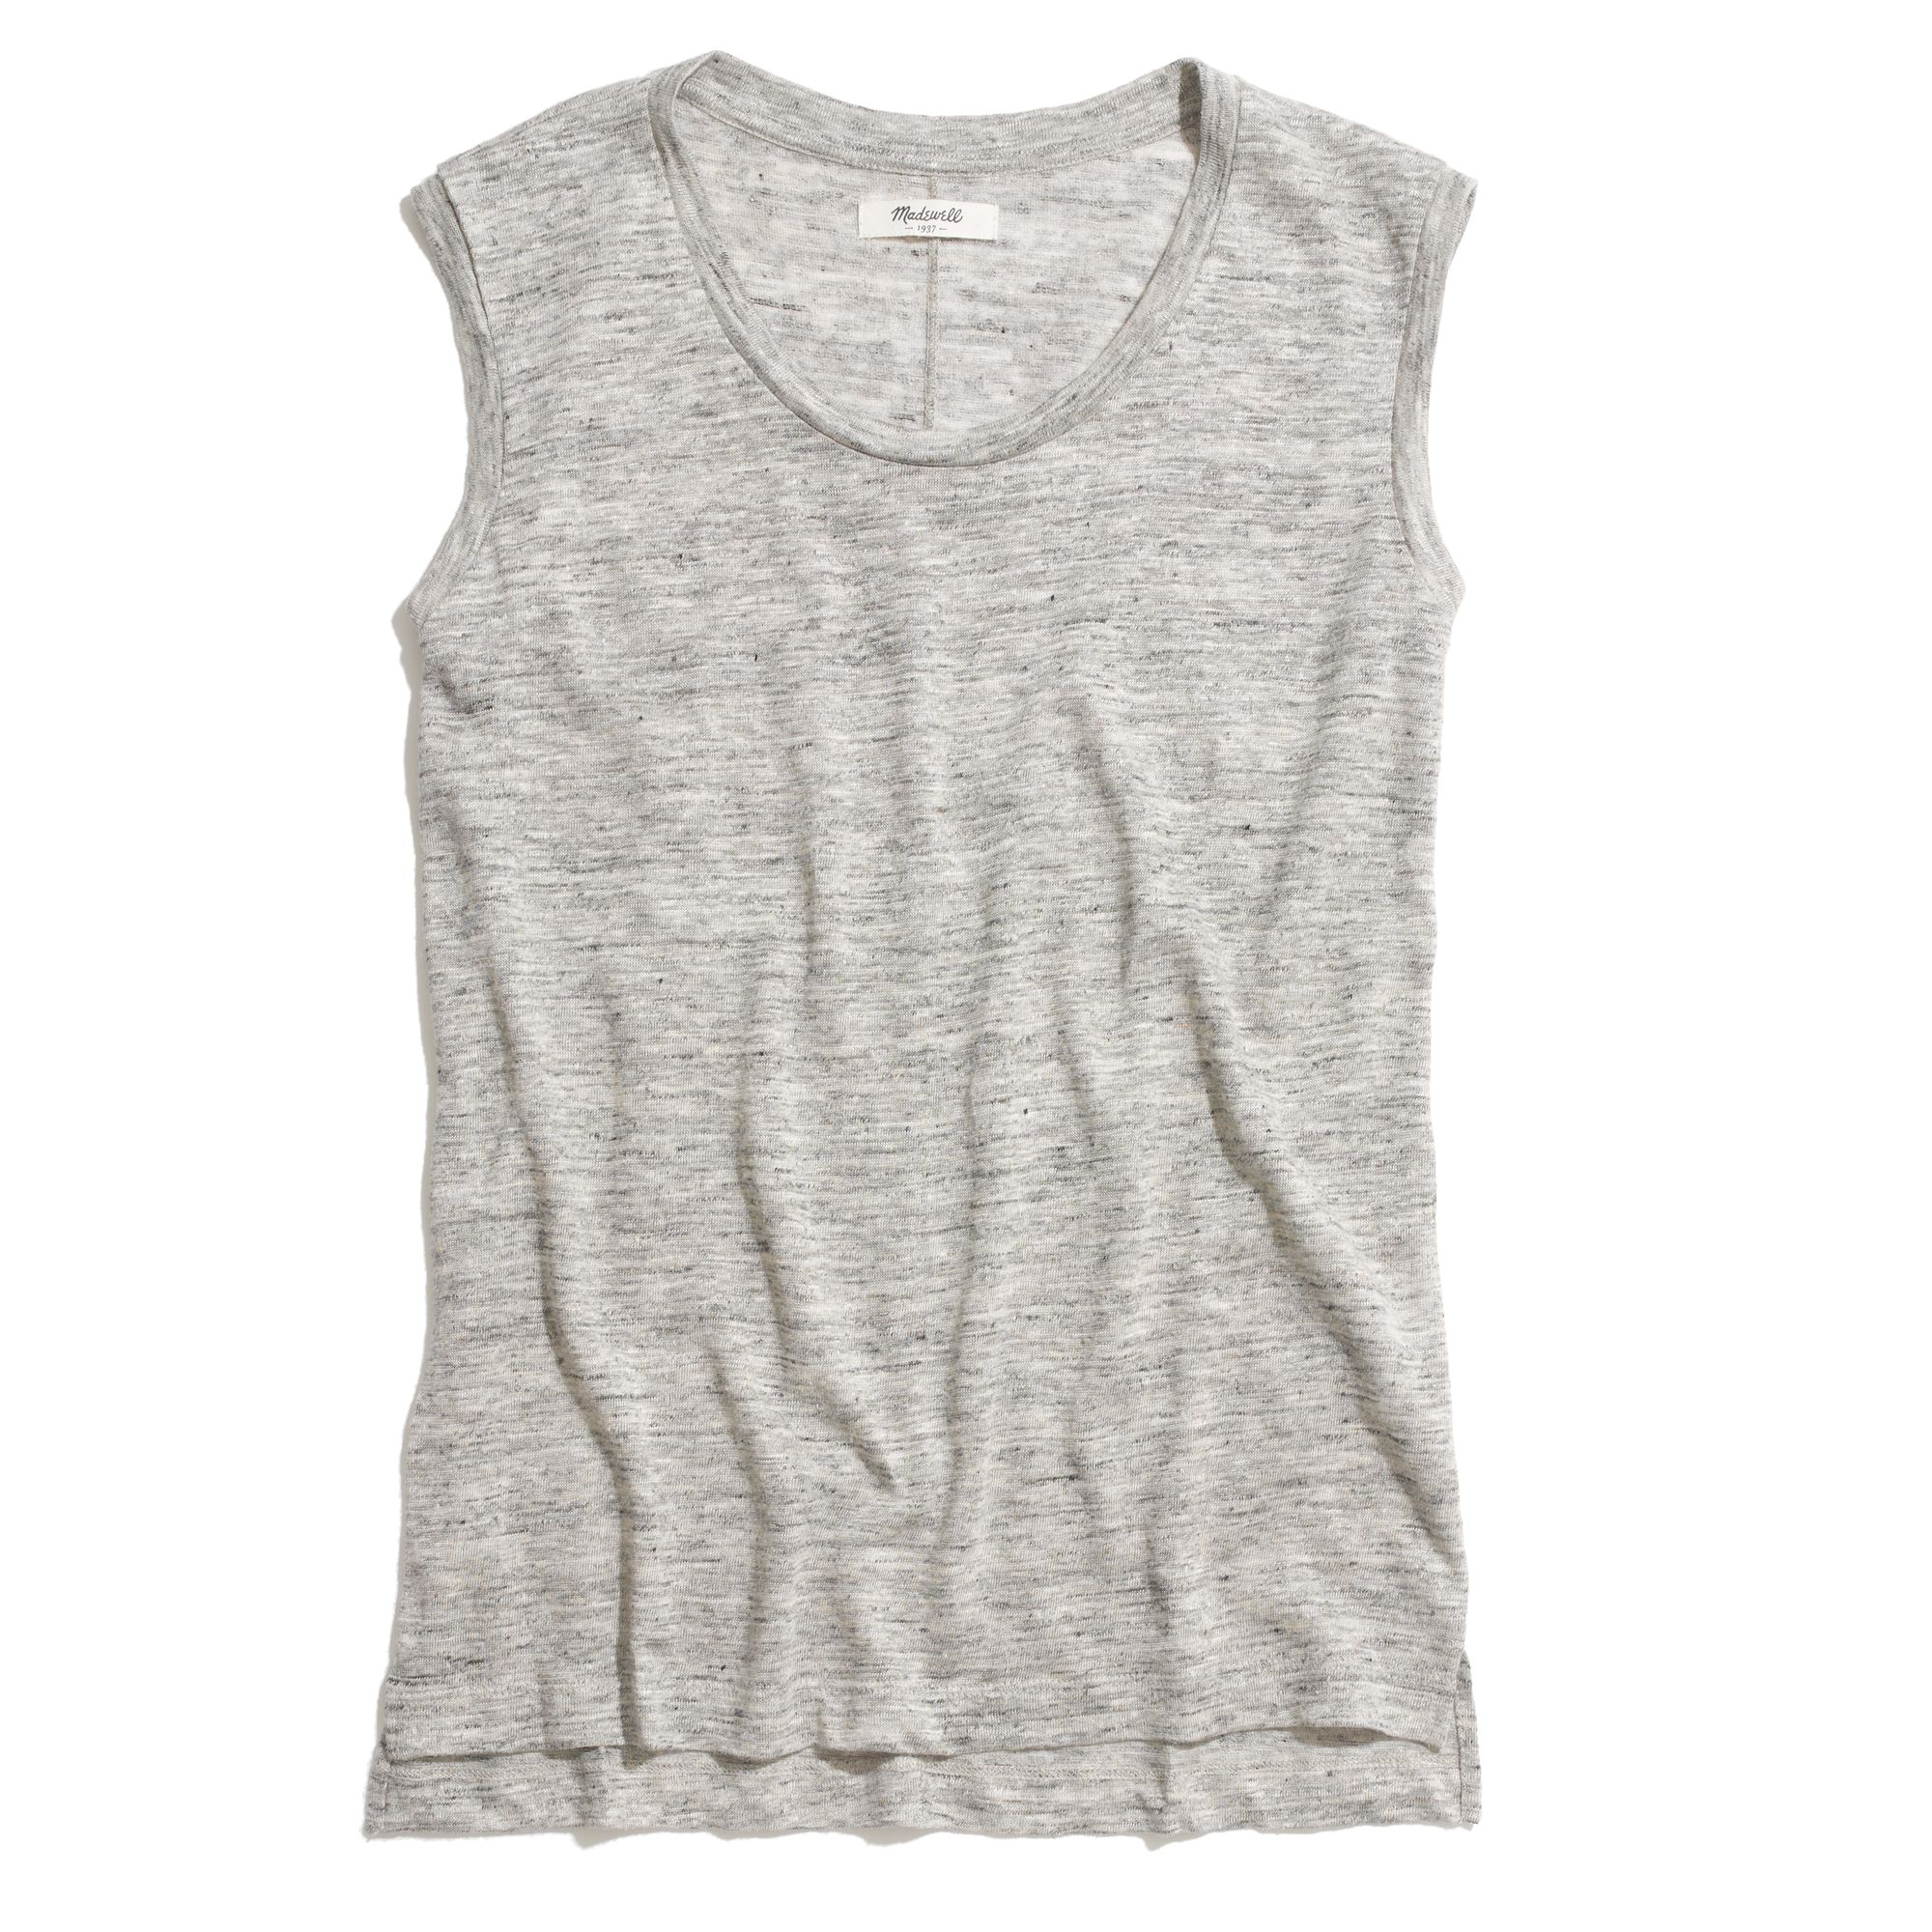 19470a66f56b8d Lyst - Madewell Modern Linen Muscle Tee in Heather in Gray